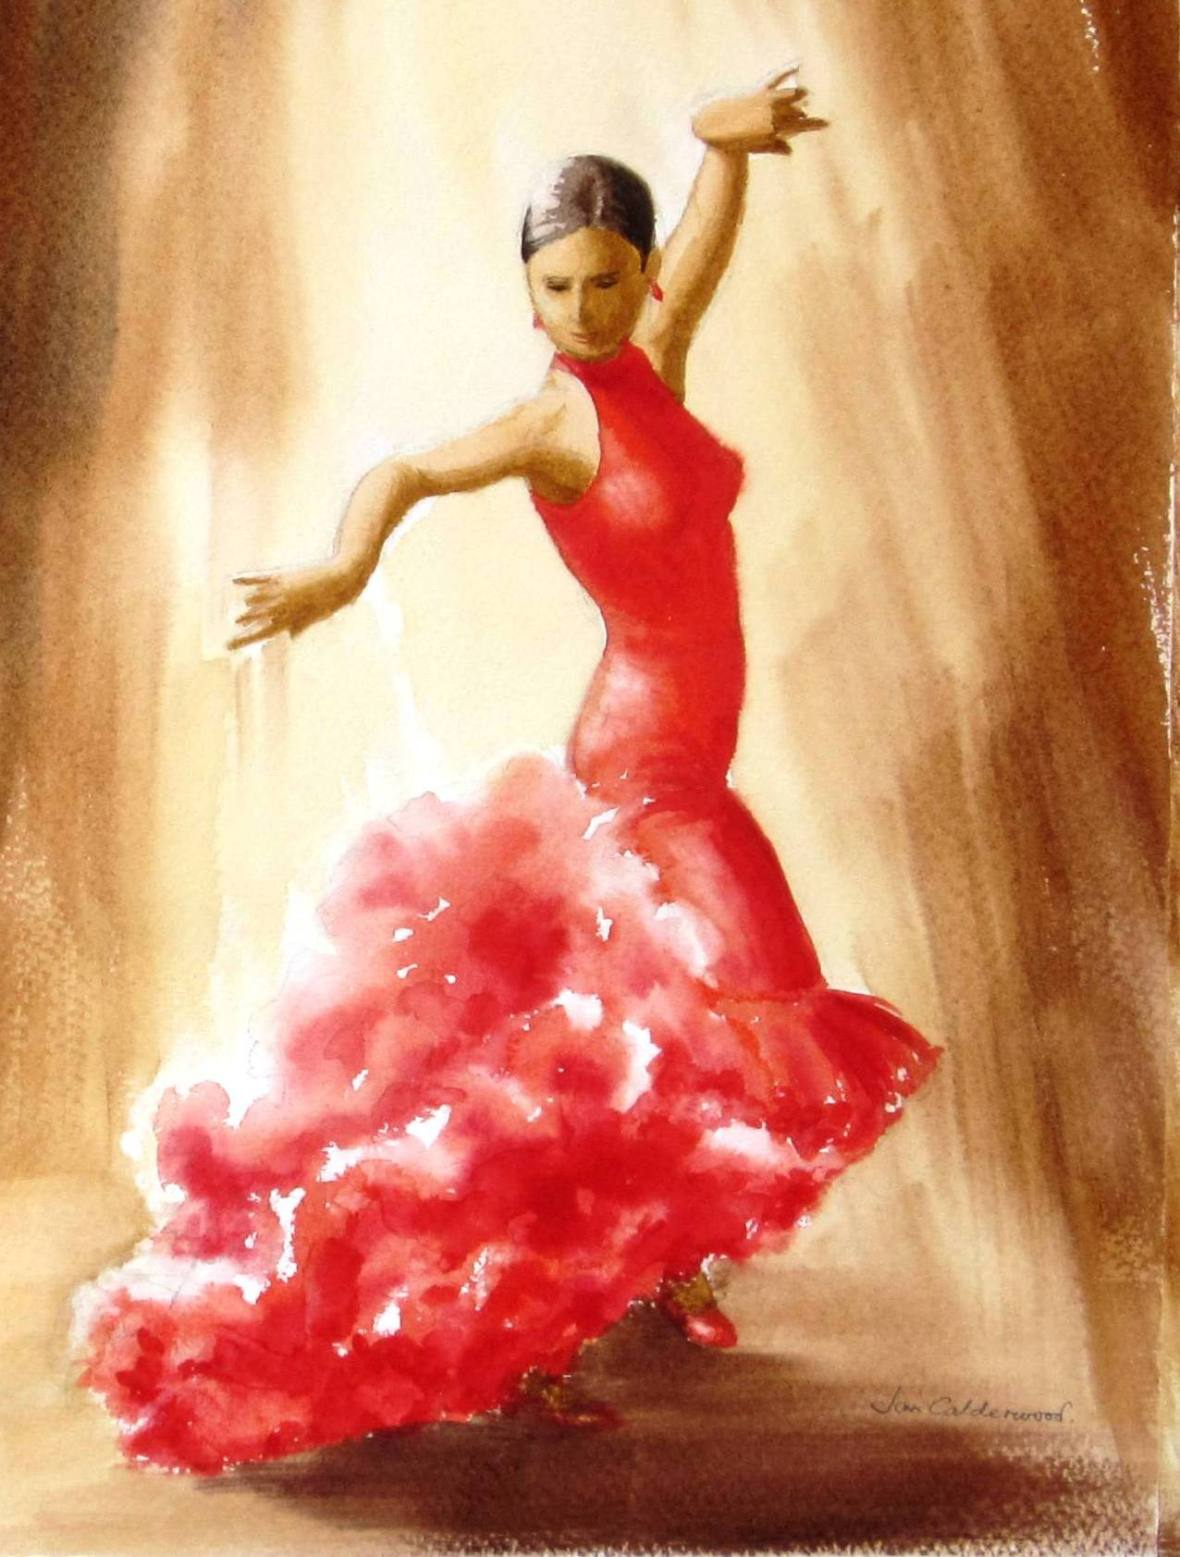 Flamenco dancer in red